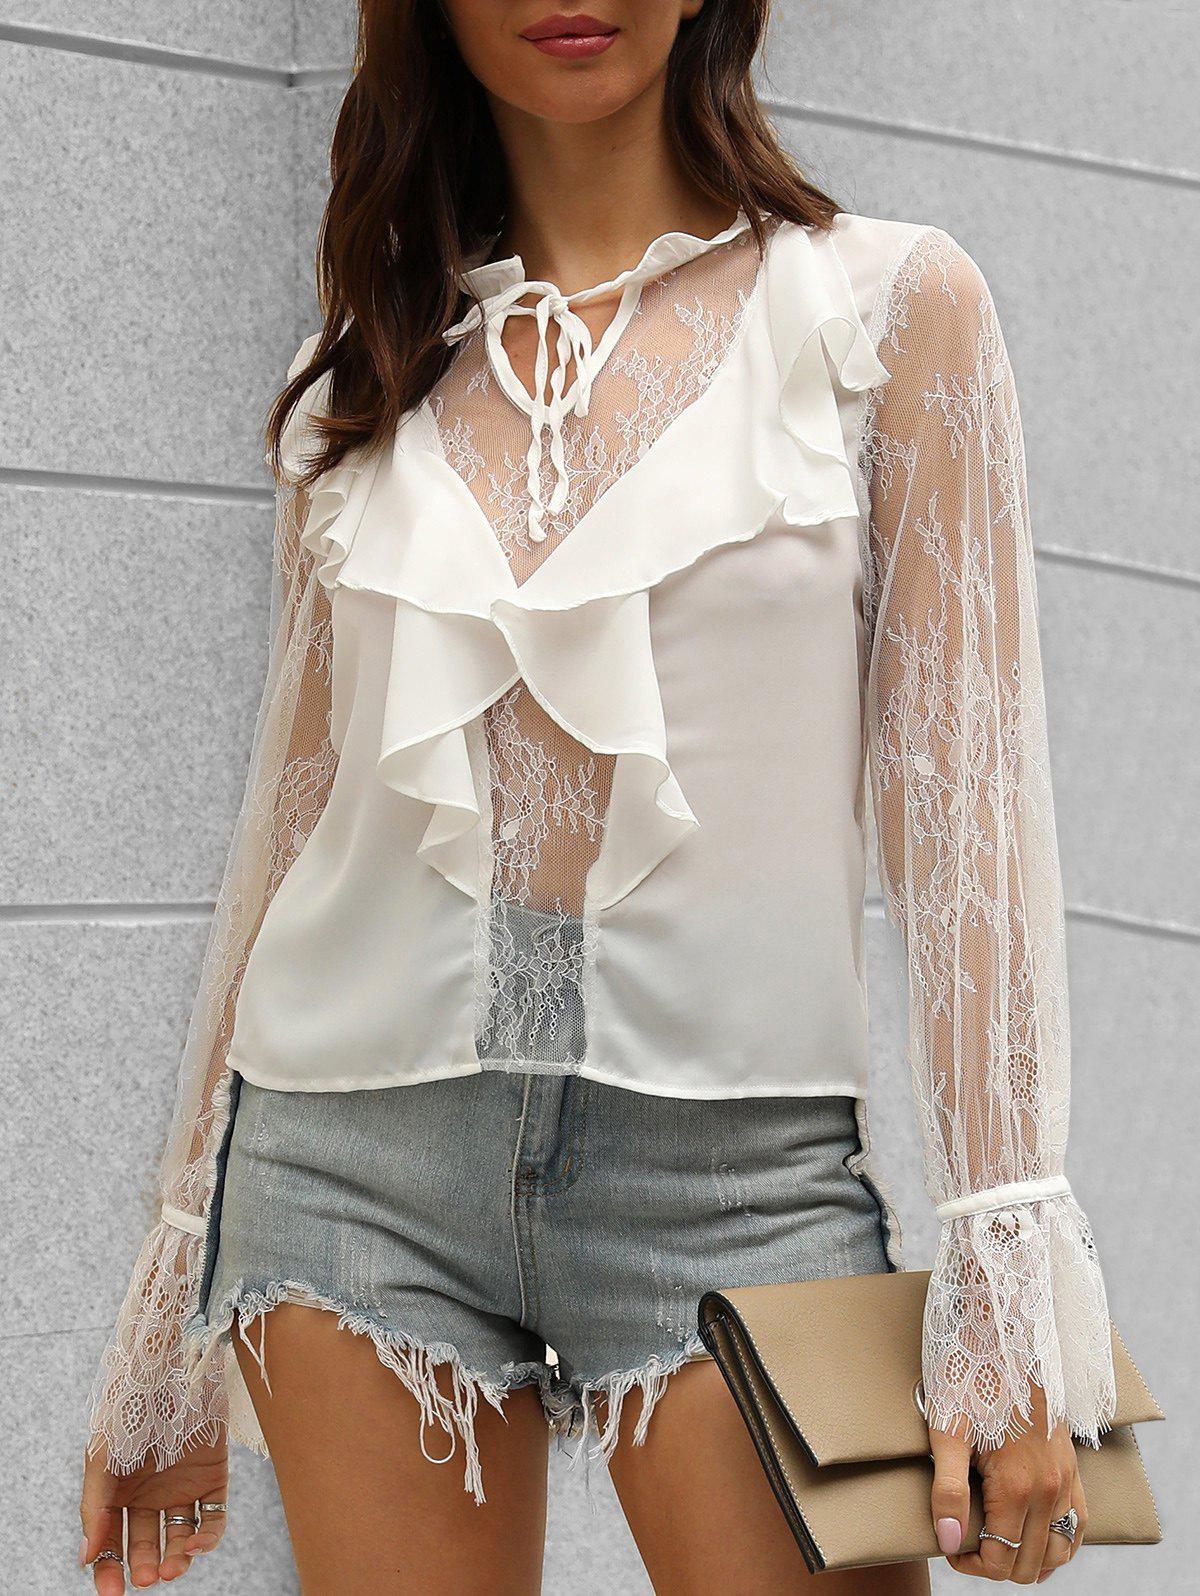 Poet Sleeve Lace Insert Notched Blouse - WHITE XL